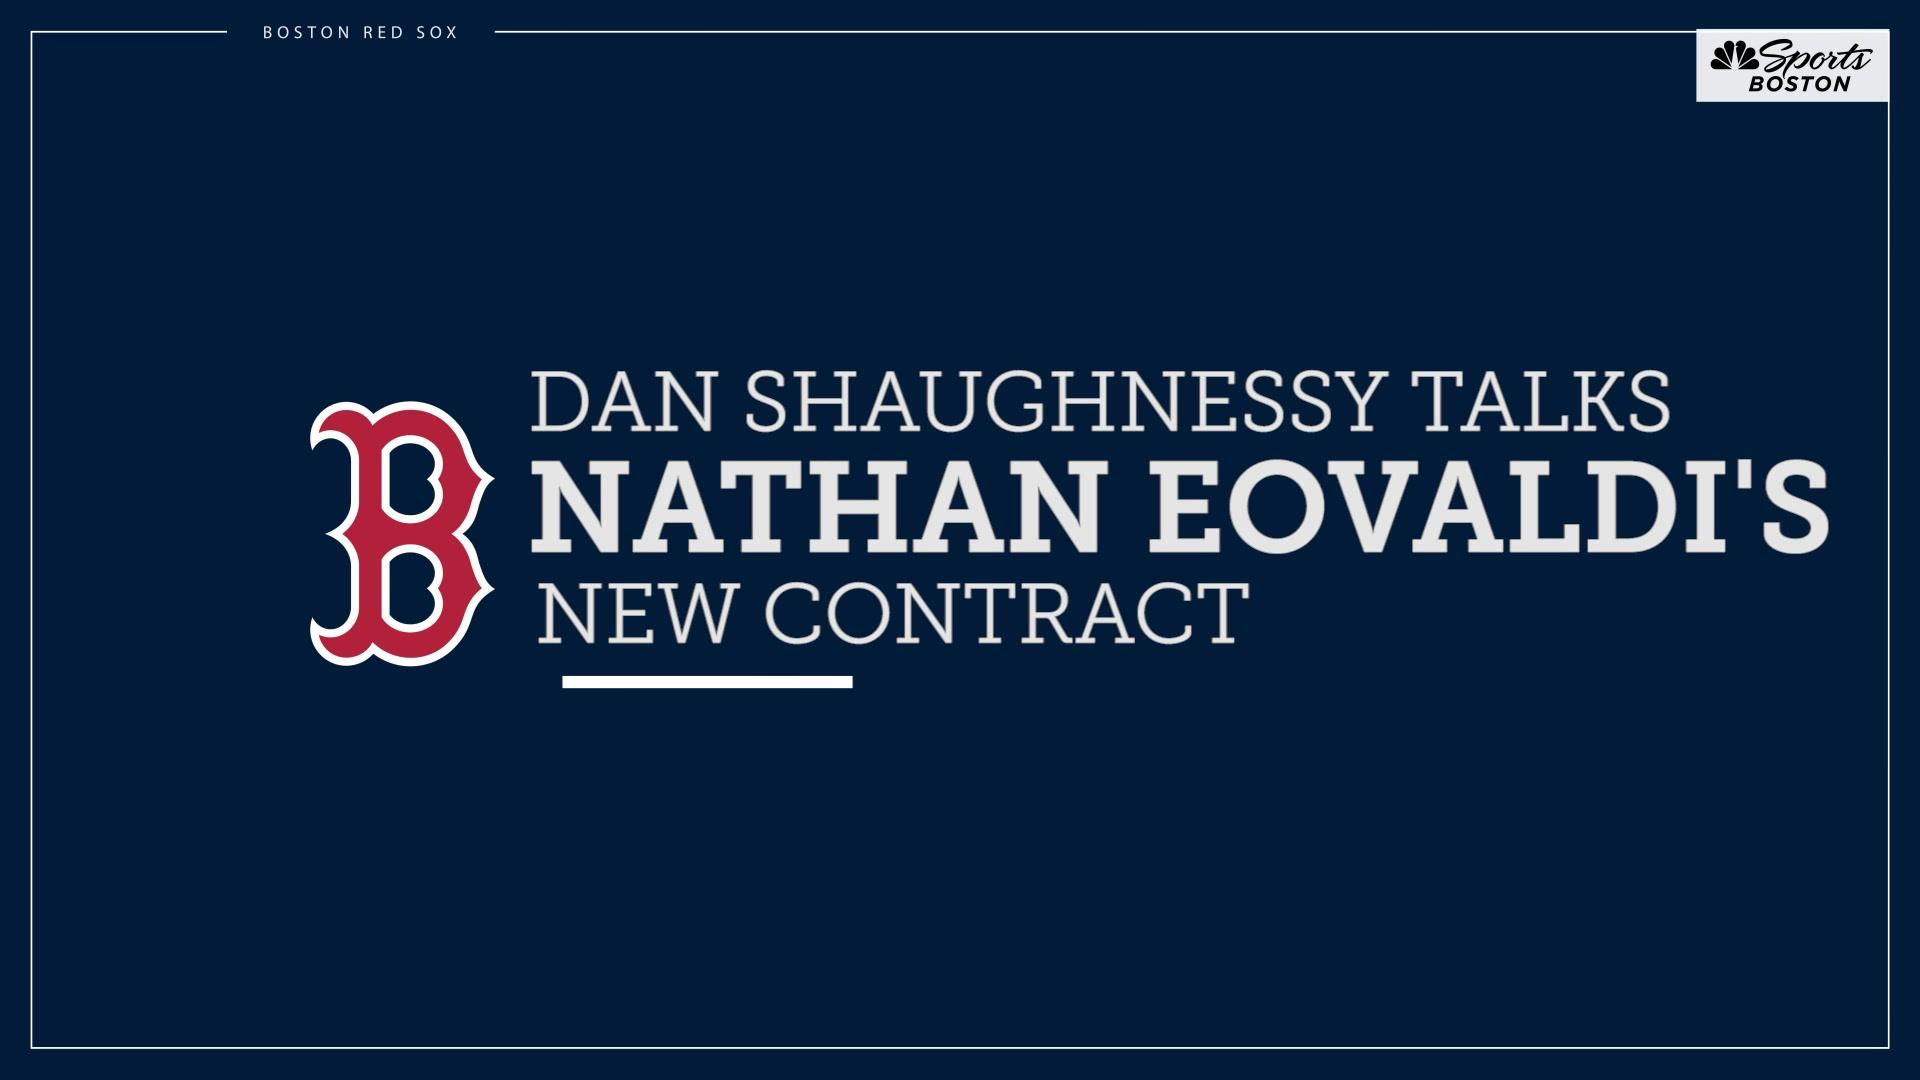 """Shaughnessy on Nathan Eovaldi: """"Win for fans on the pitching investment"""""""